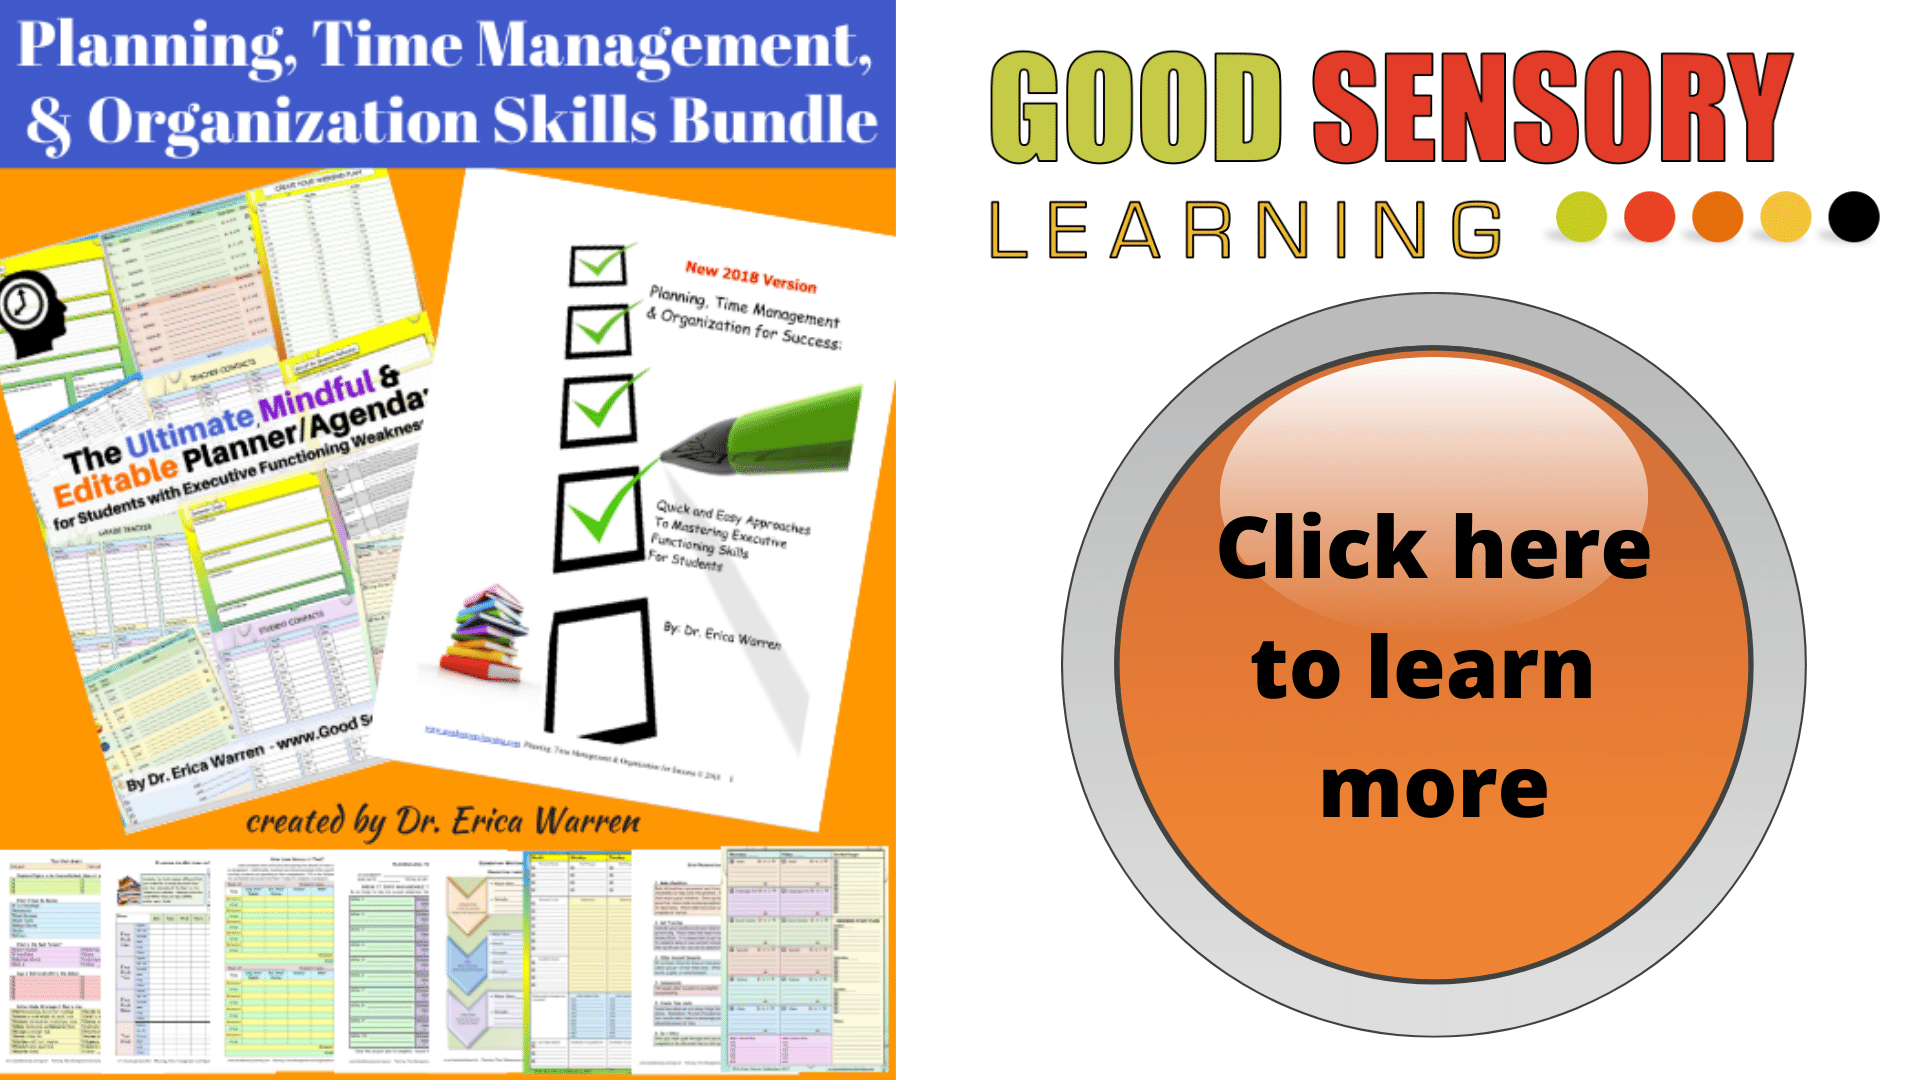 Planning, Time Management for Students